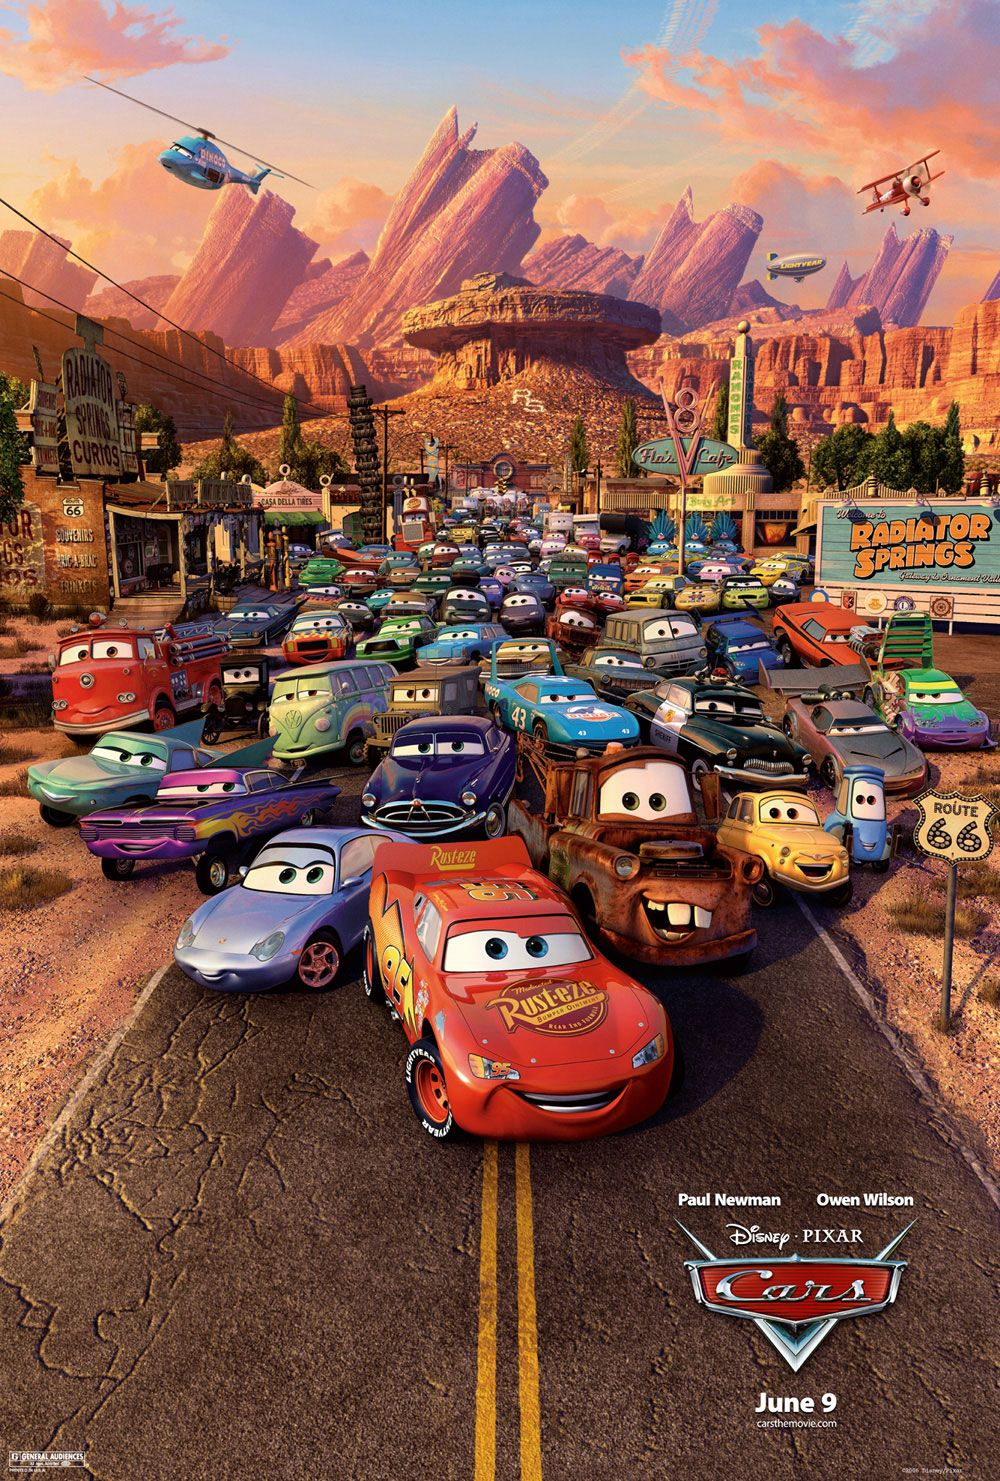 Say What You Will About The Paltry Cars 2 But The Original Cars Is